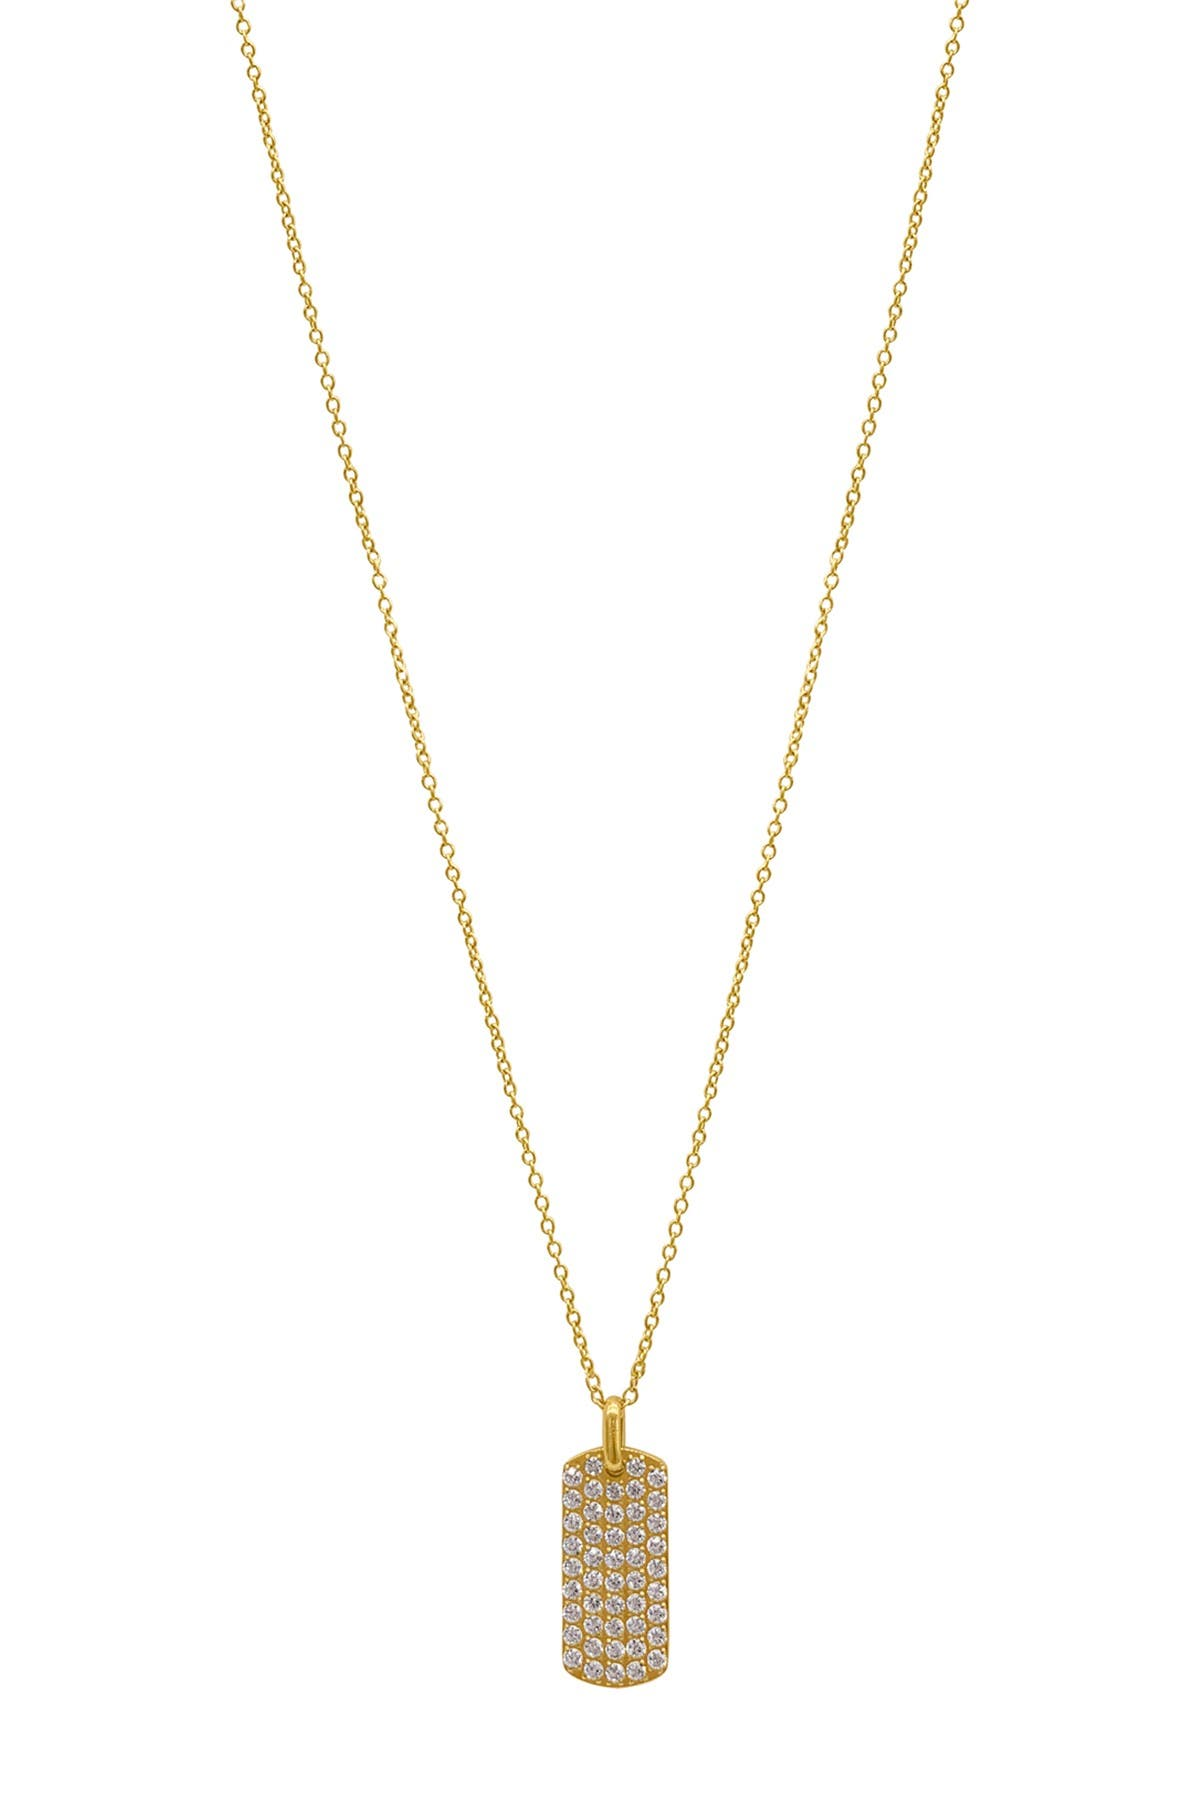 Image of ADORNIA 14K Gold Plated Pave Crystal Dog Tag Pendant Necklace